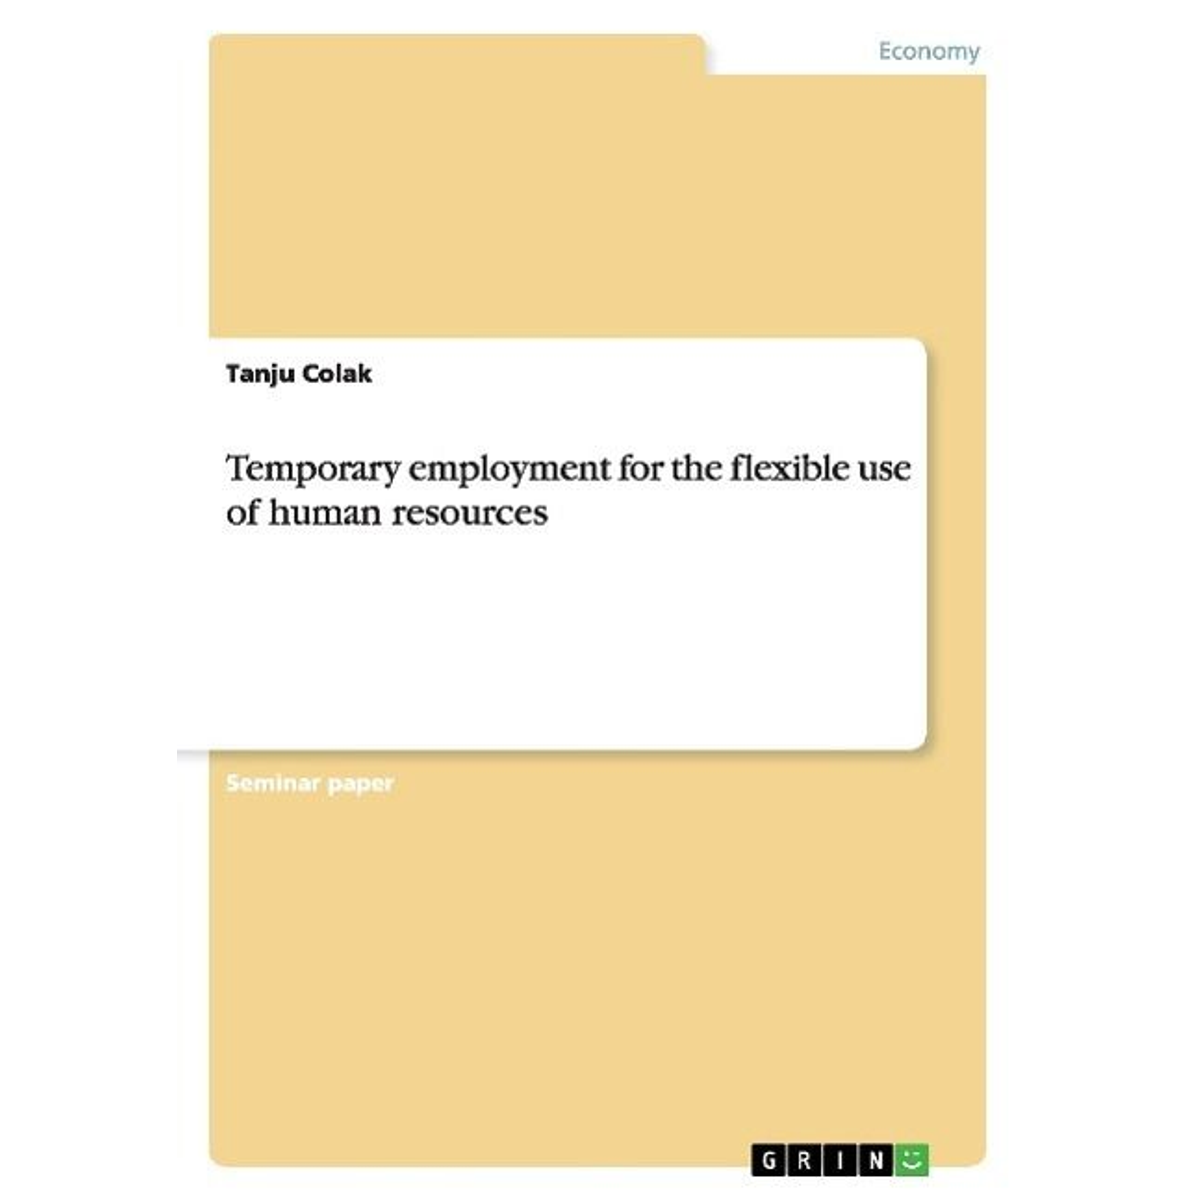 Temporary employment for the flexible use of human resources